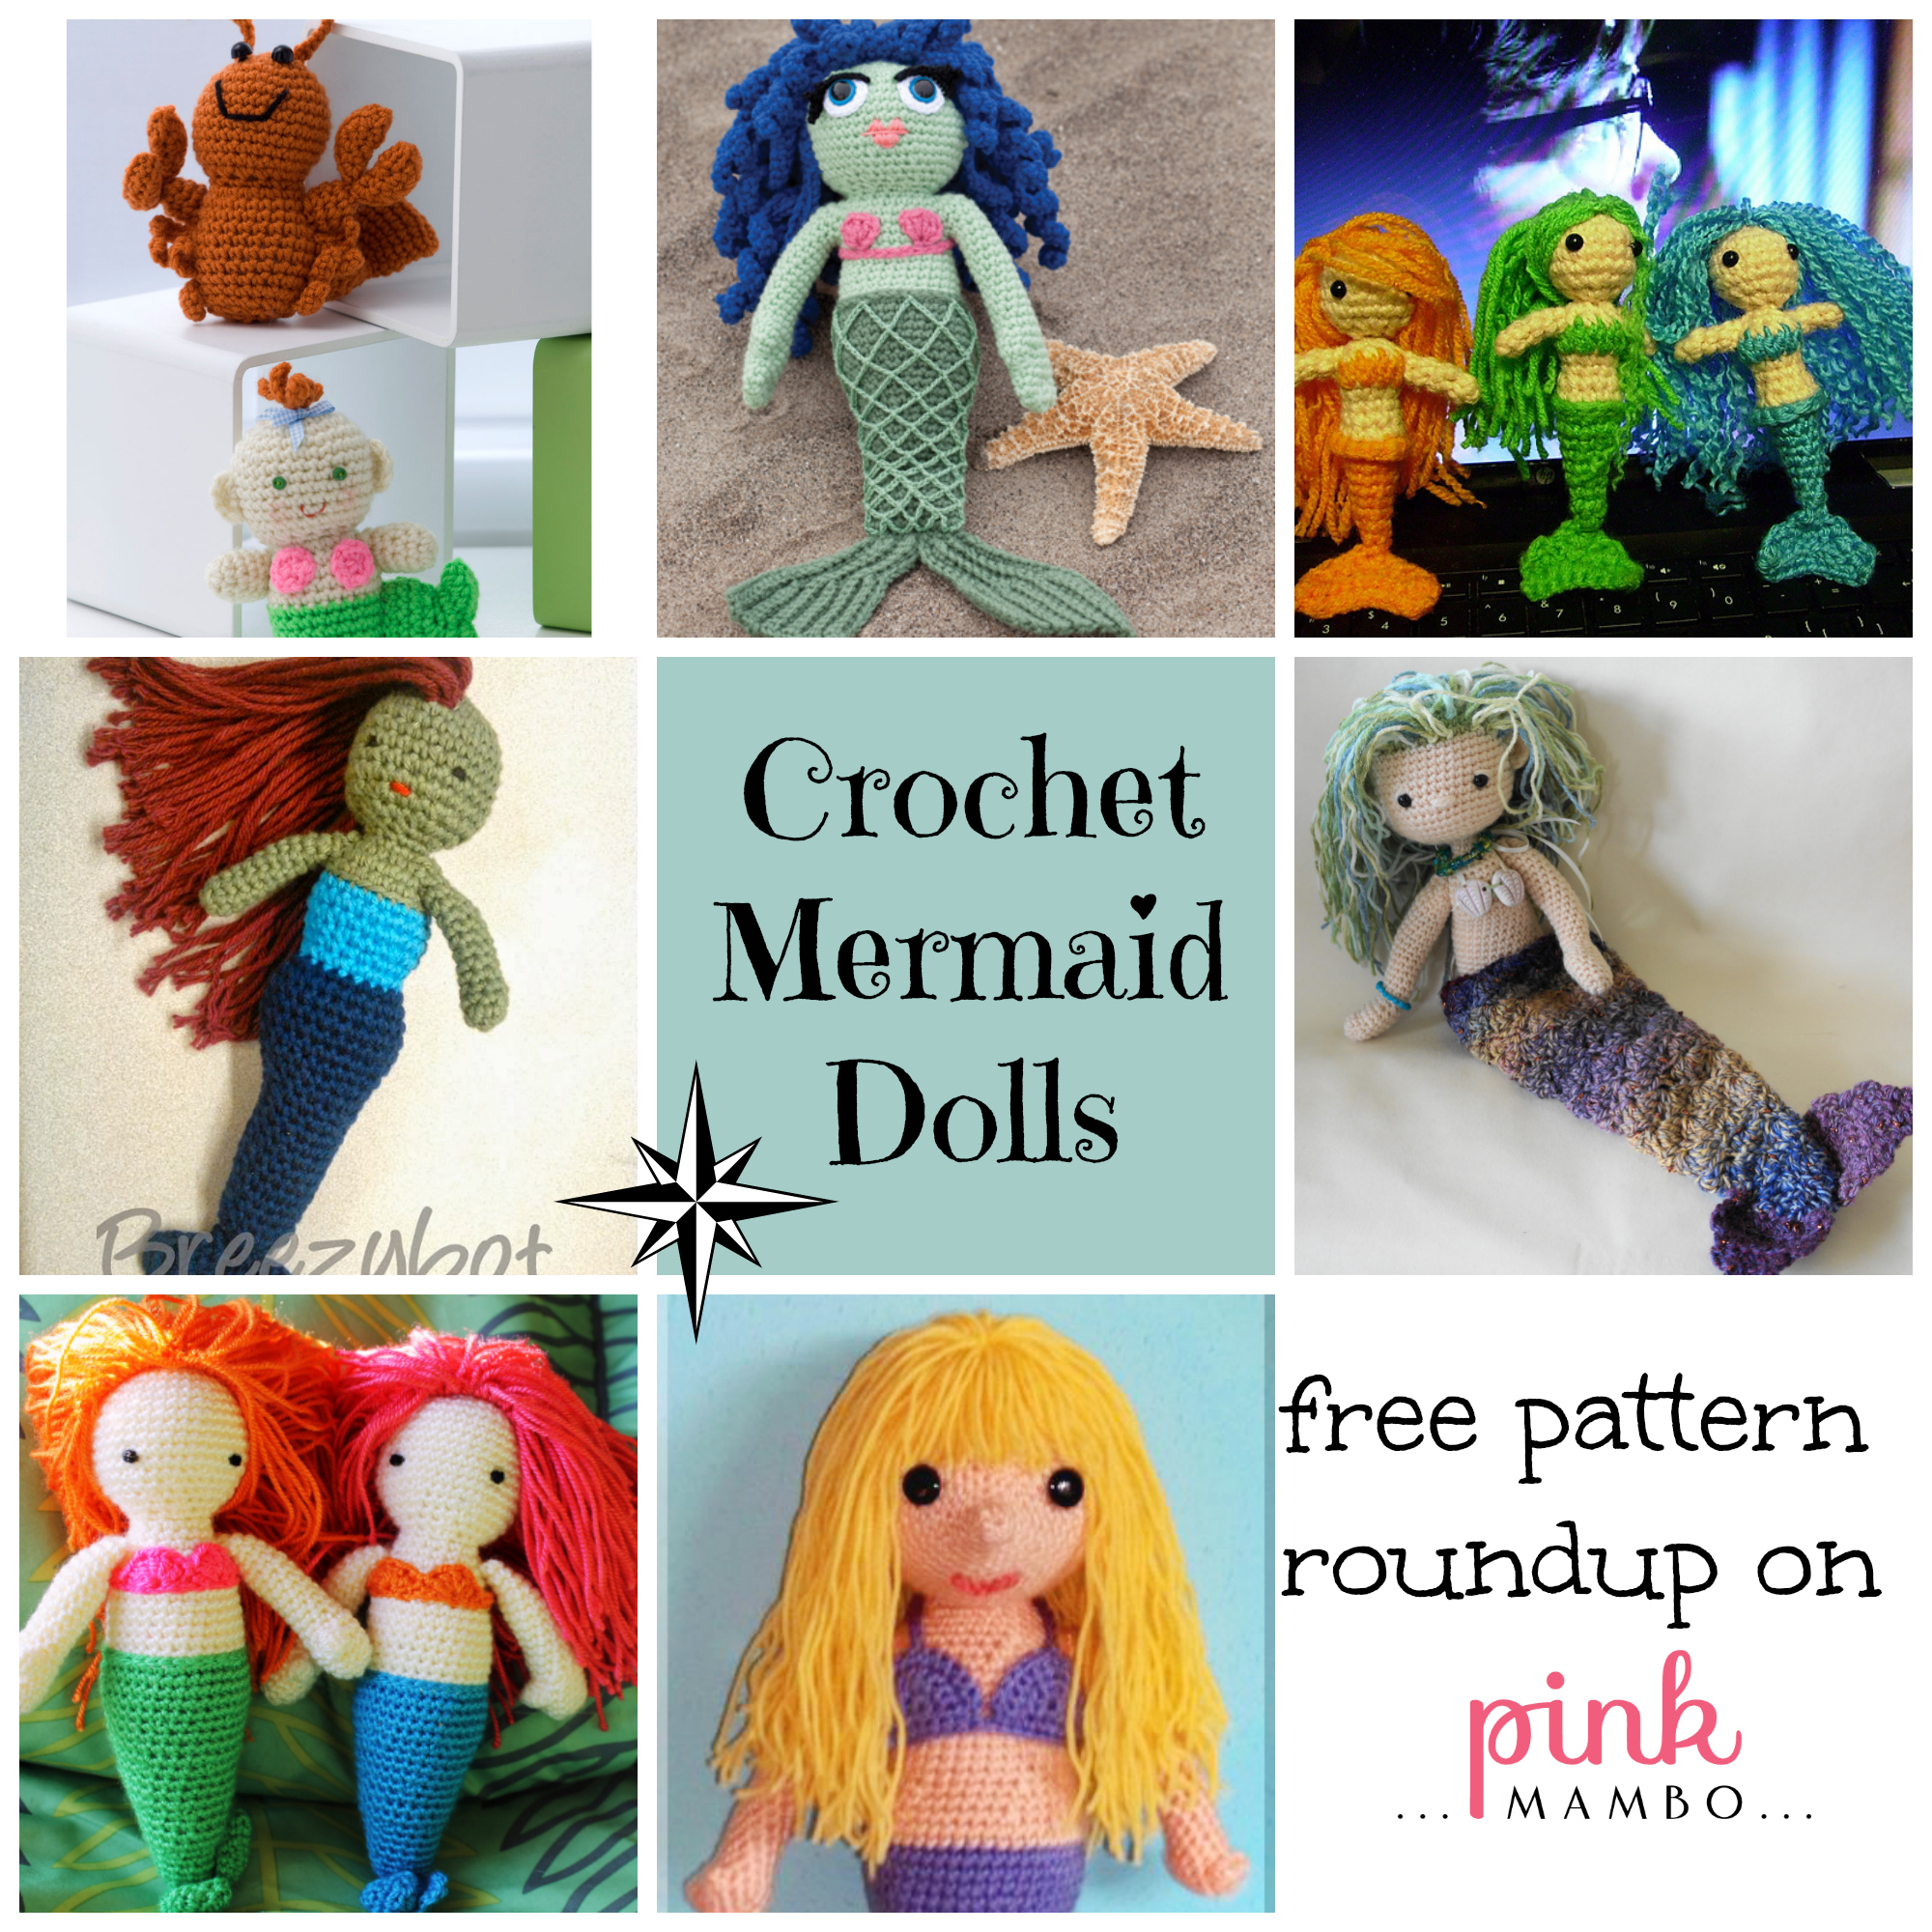 Crochet Mermaid Dolls Free Pattern Roundup Pink Mambo